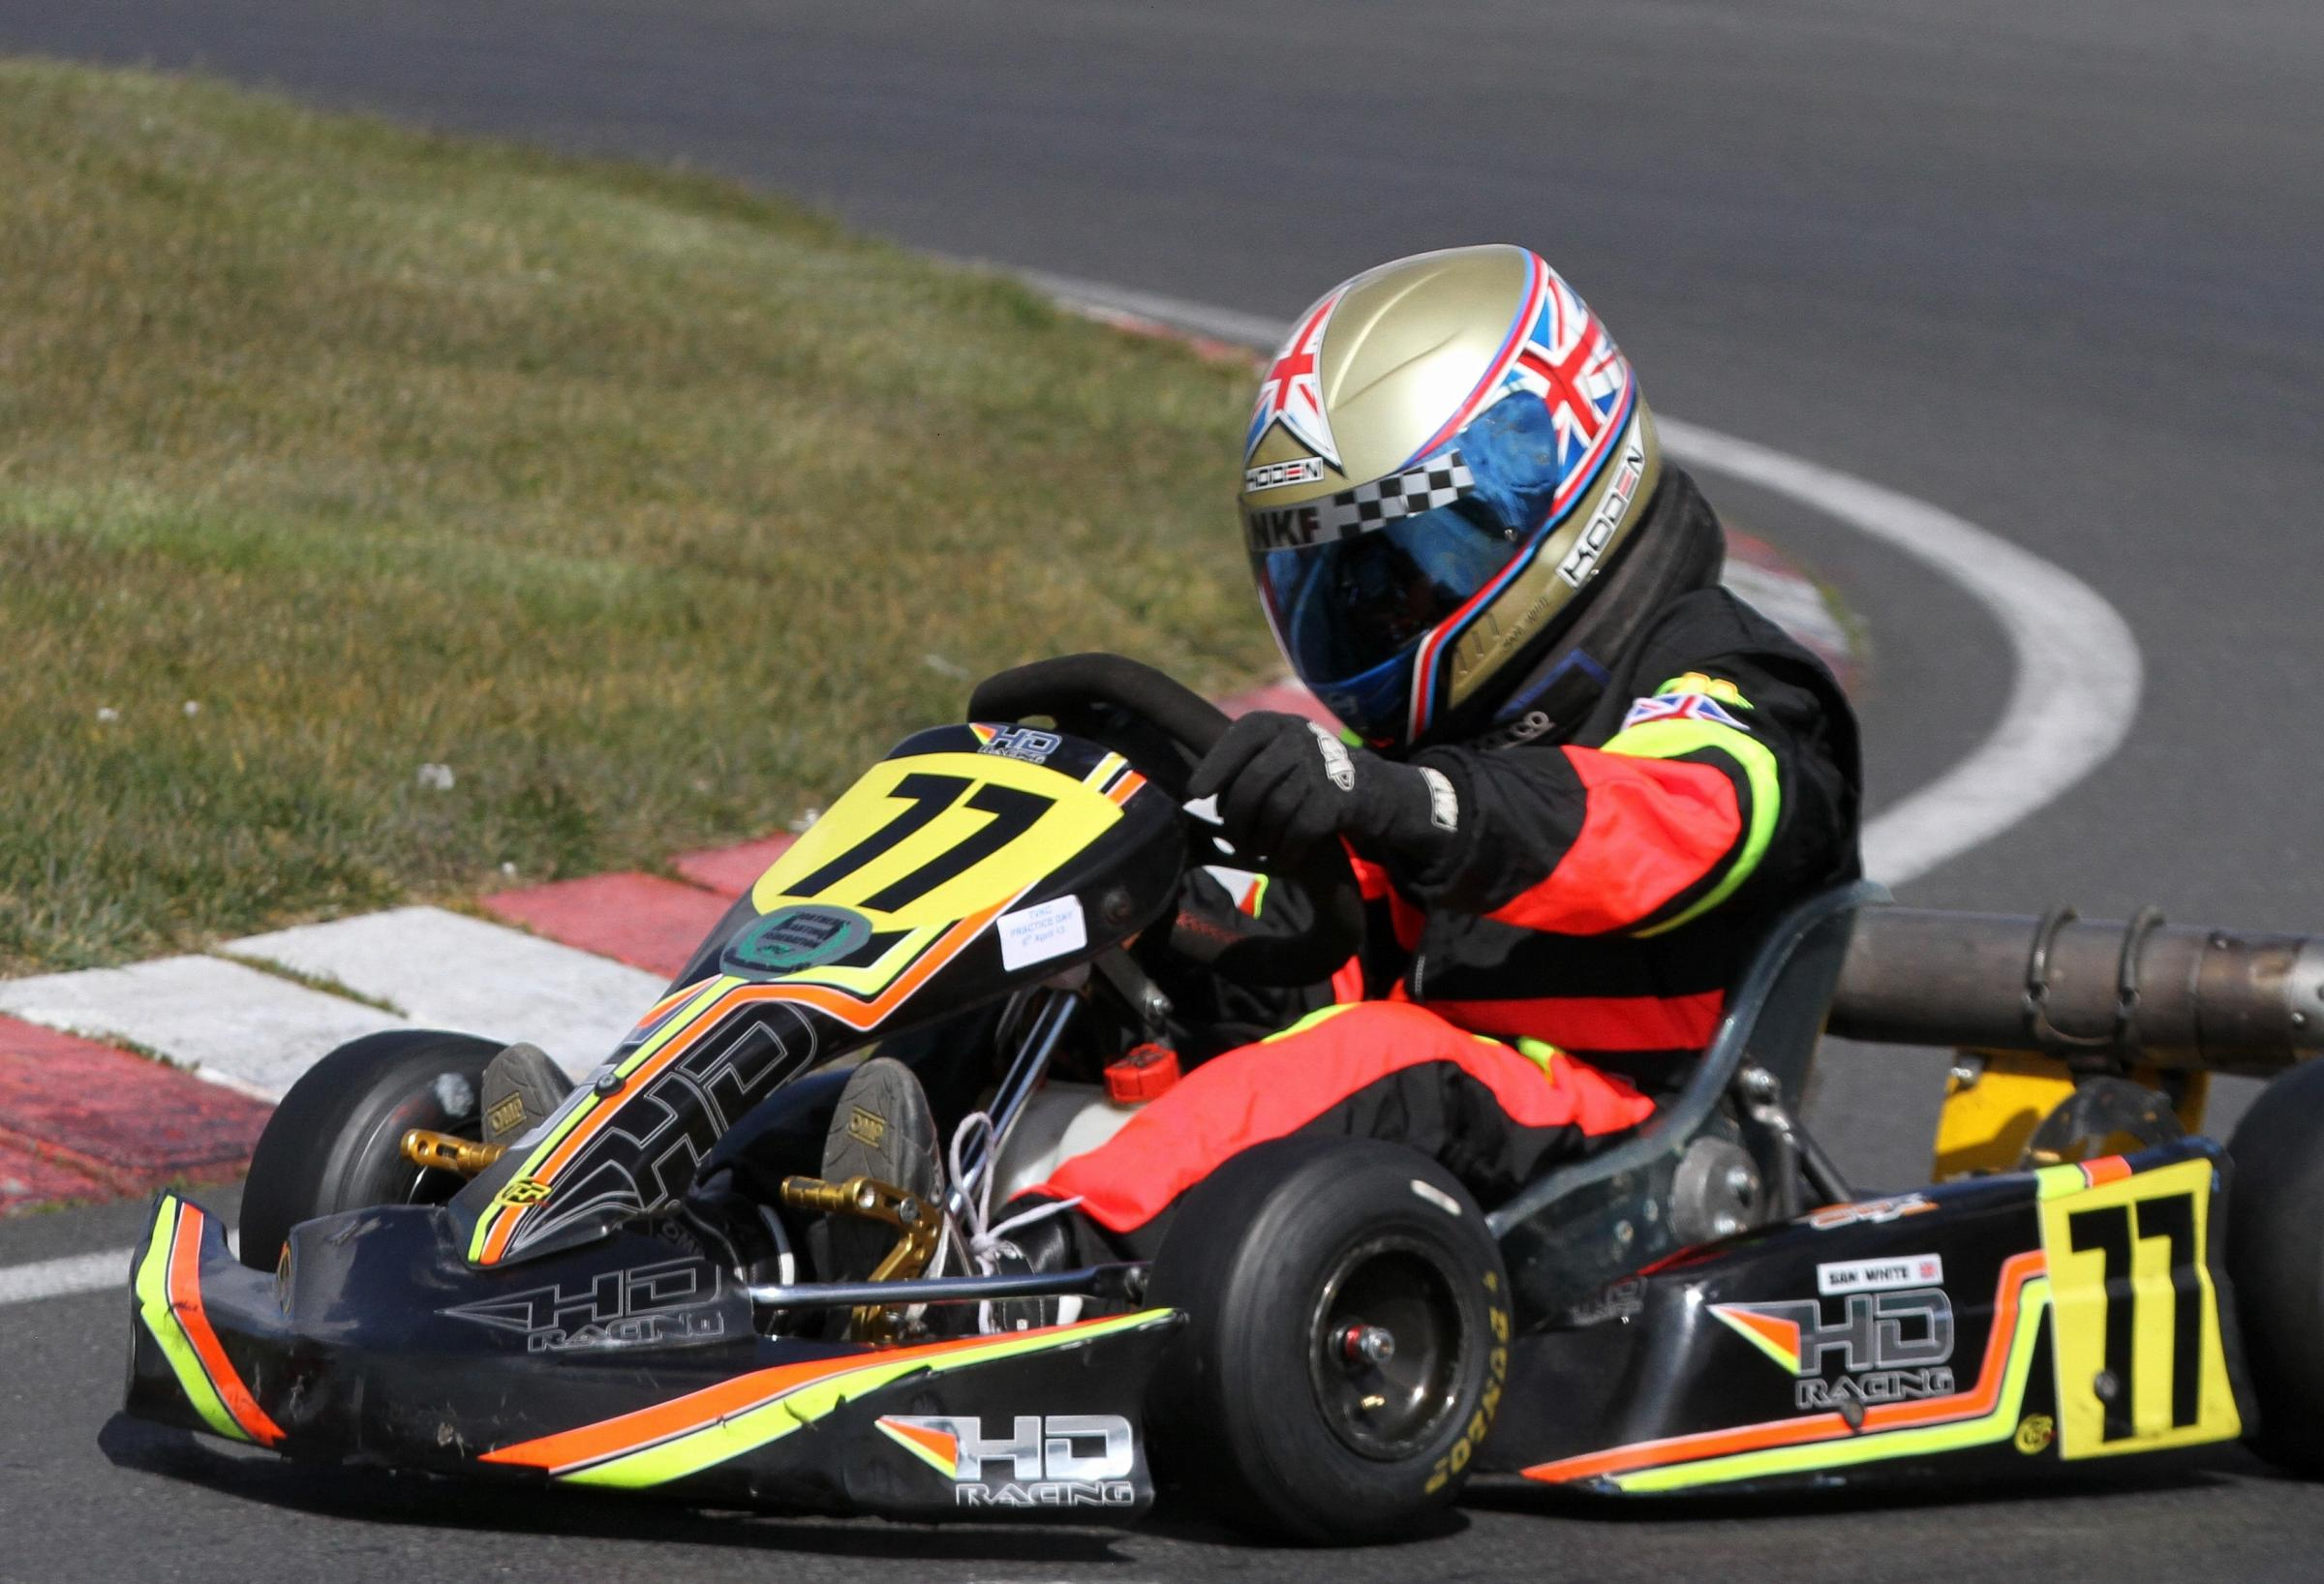 Windermere's rising karting star Sam White stays in the tracks of legends